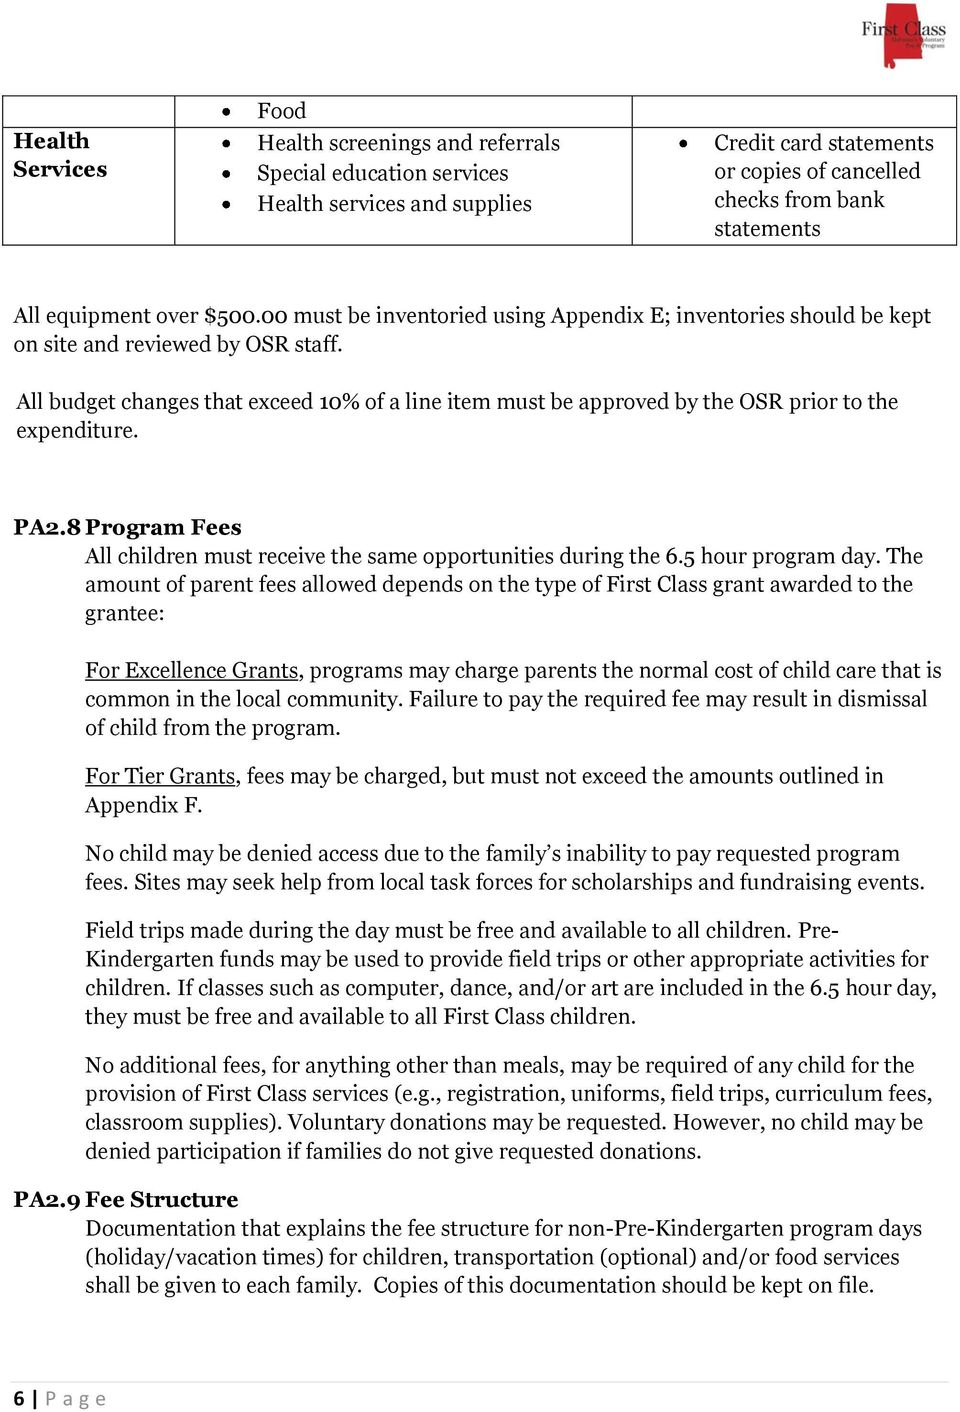 All budget changes that exceed 10% of a line item must be approved by the OSR prior to the expenditure. PA2.8 Program Fees All children must receive the same opportunities during the 6.